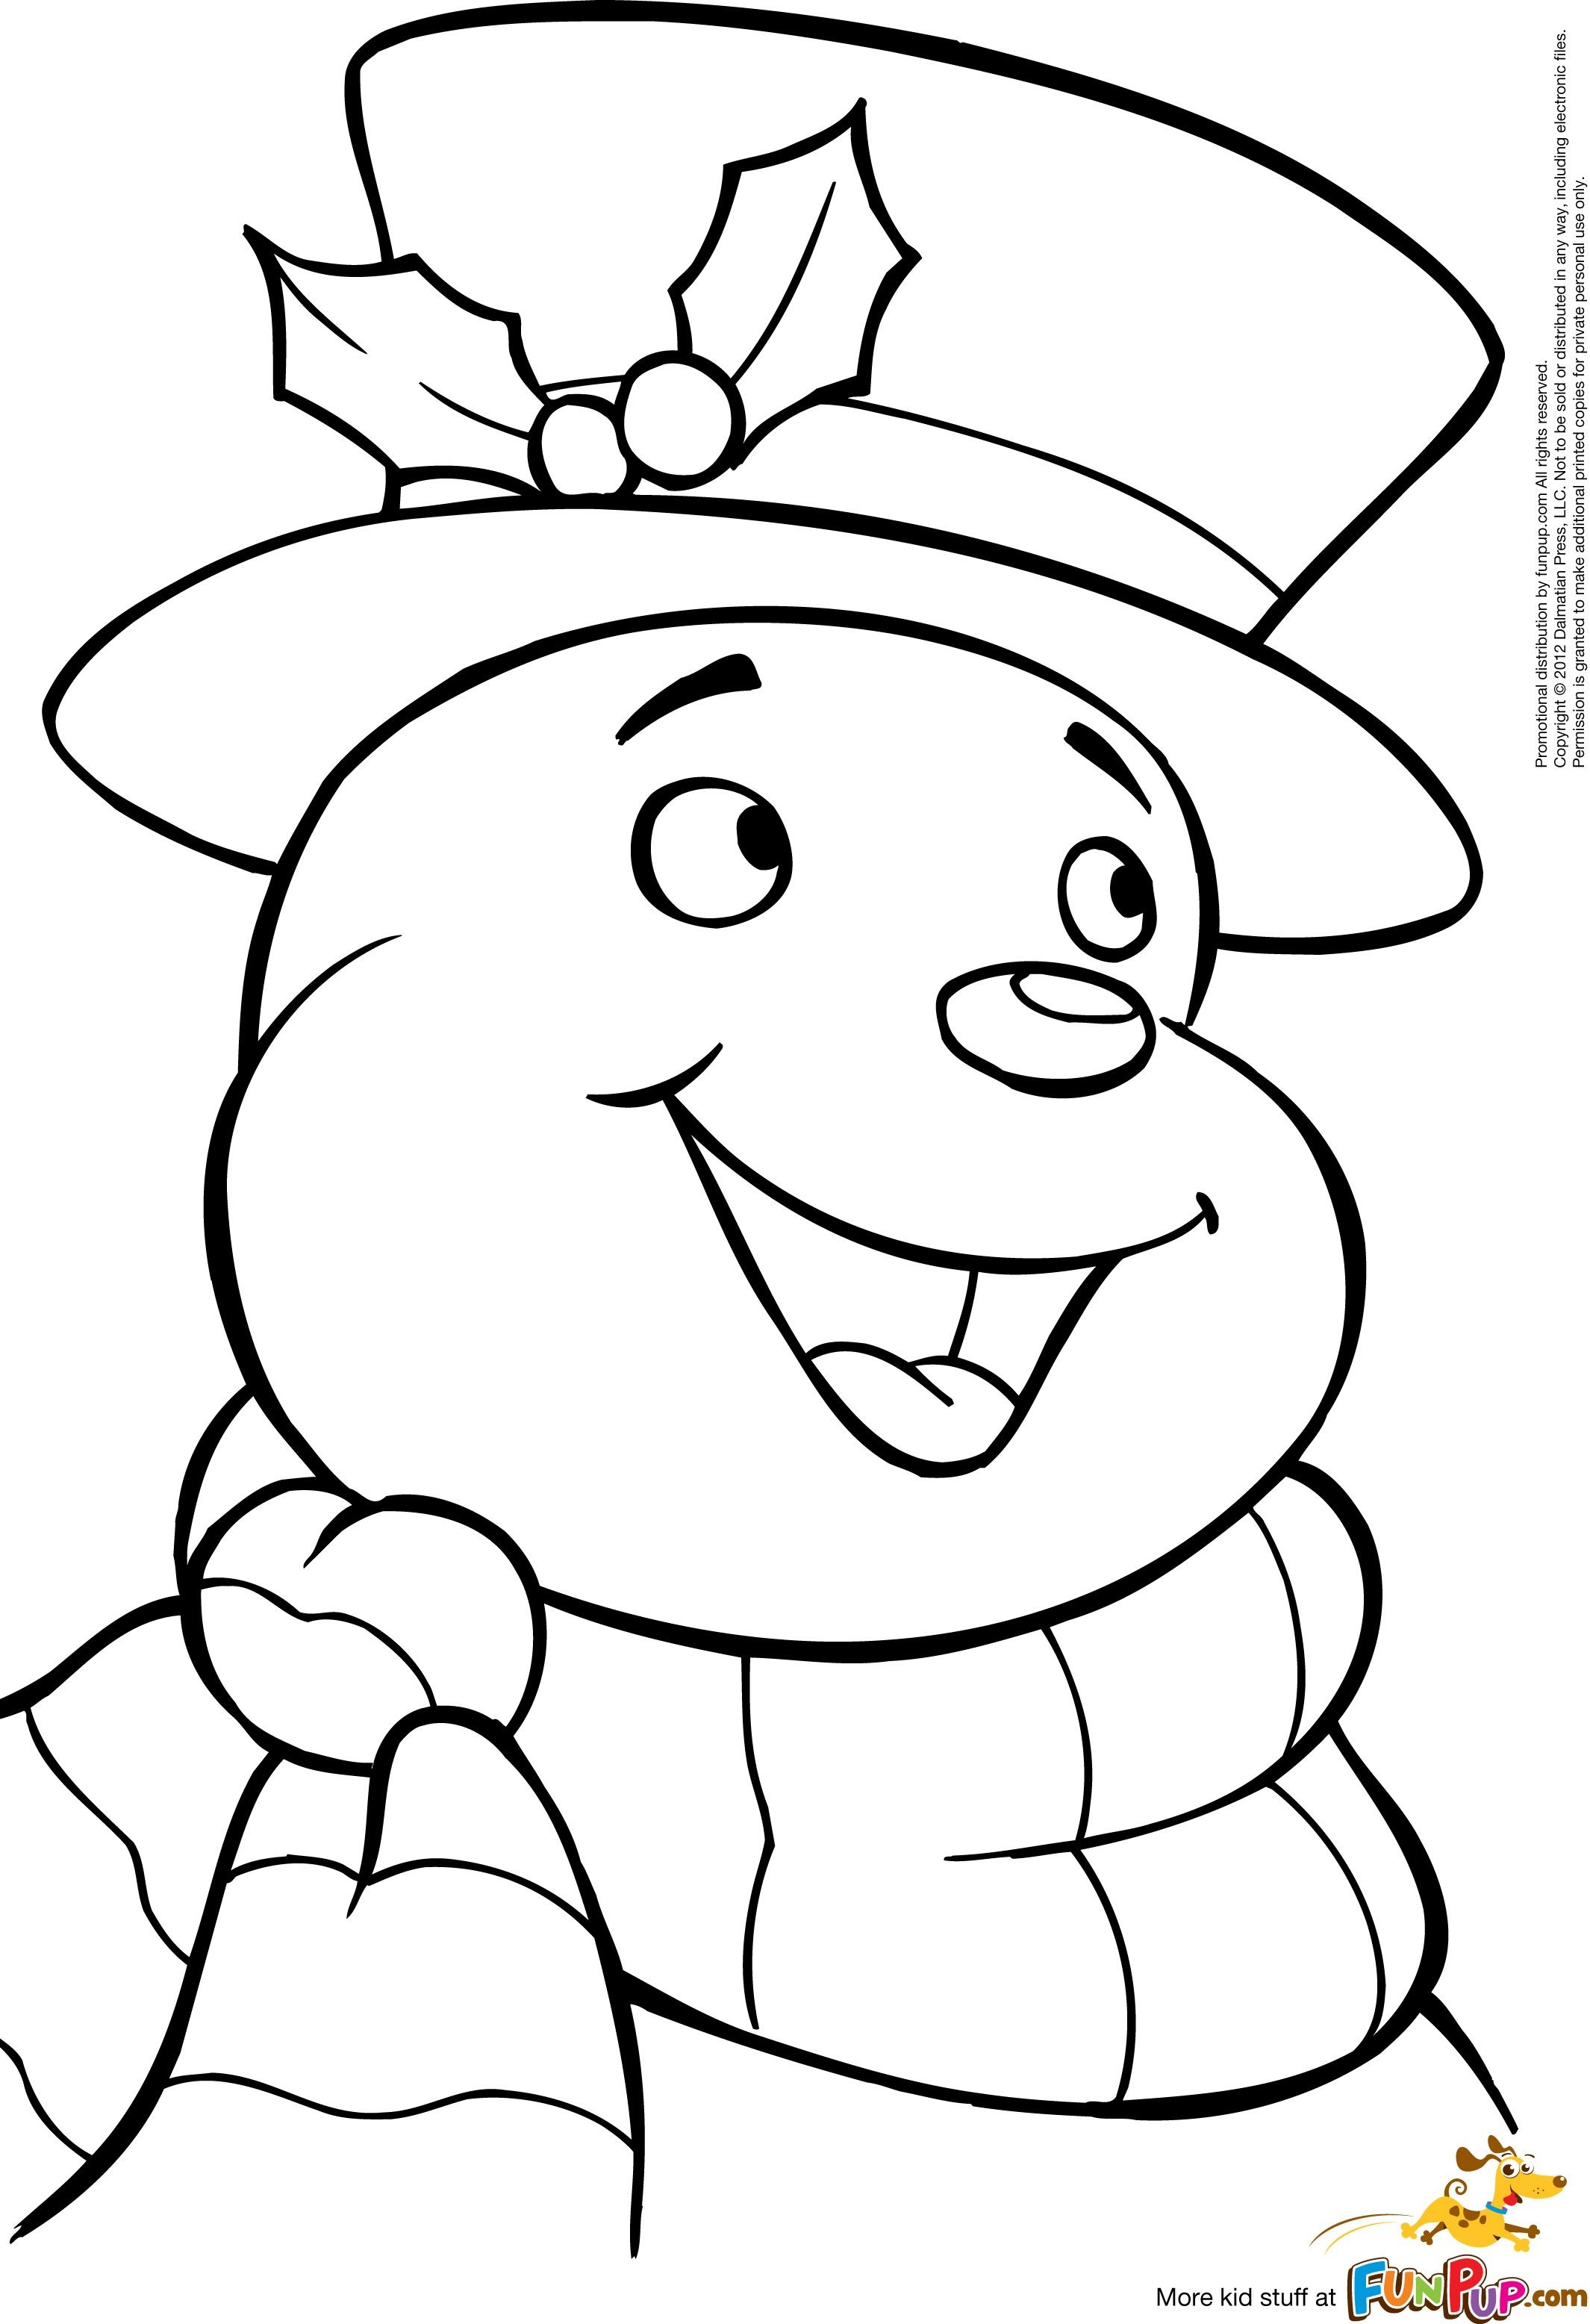 Cozy Raymond Briggs Snowman Coloring Pages Sketch Coloring